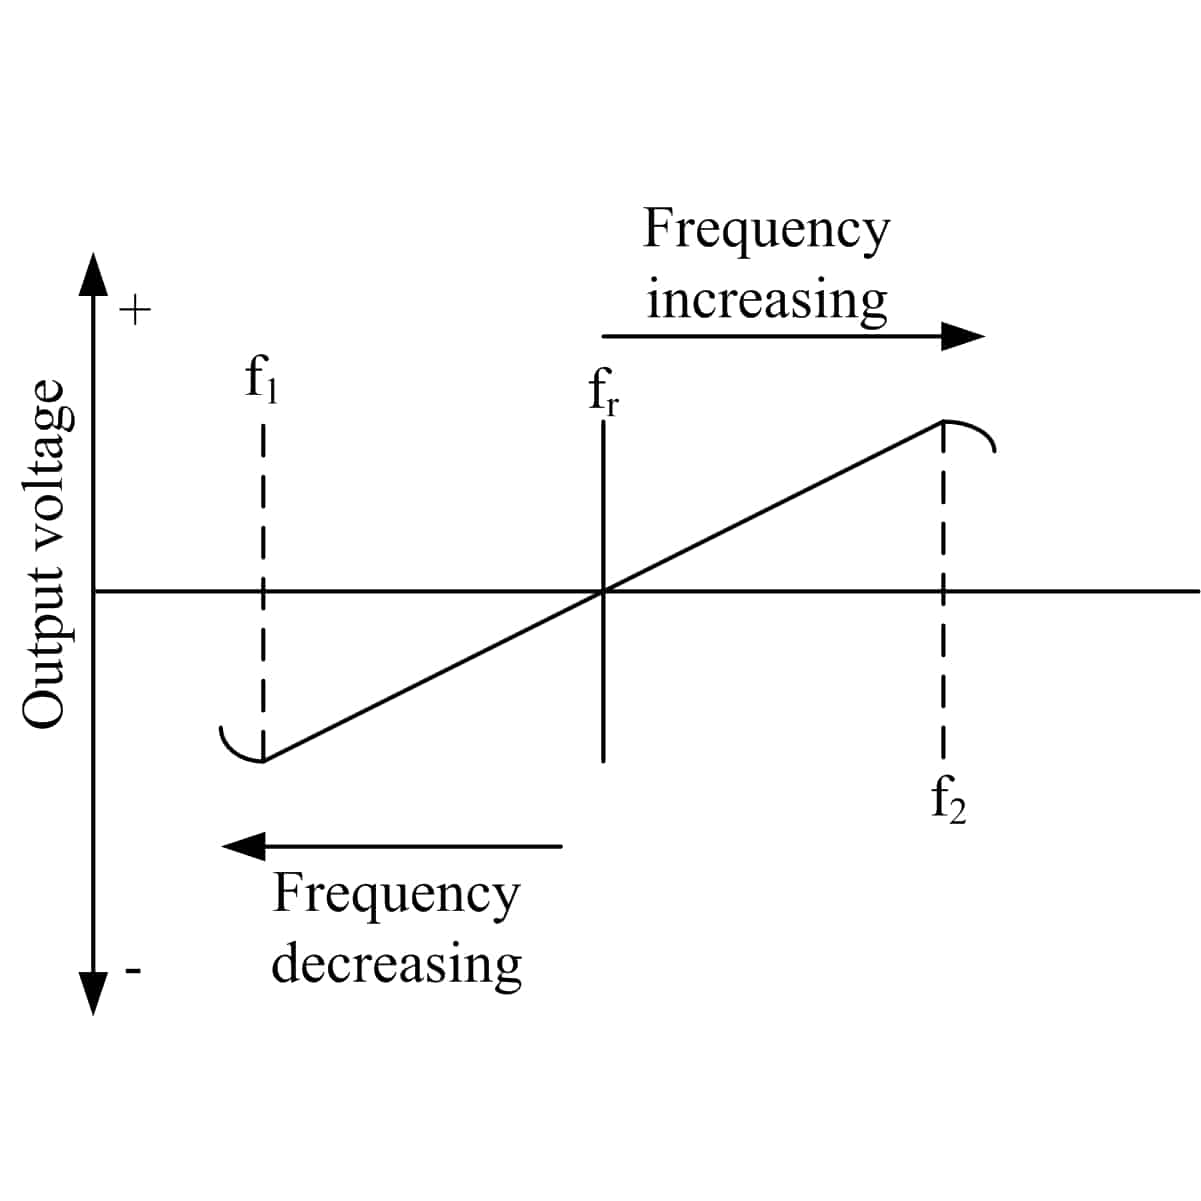 Foster-Seeley response curve